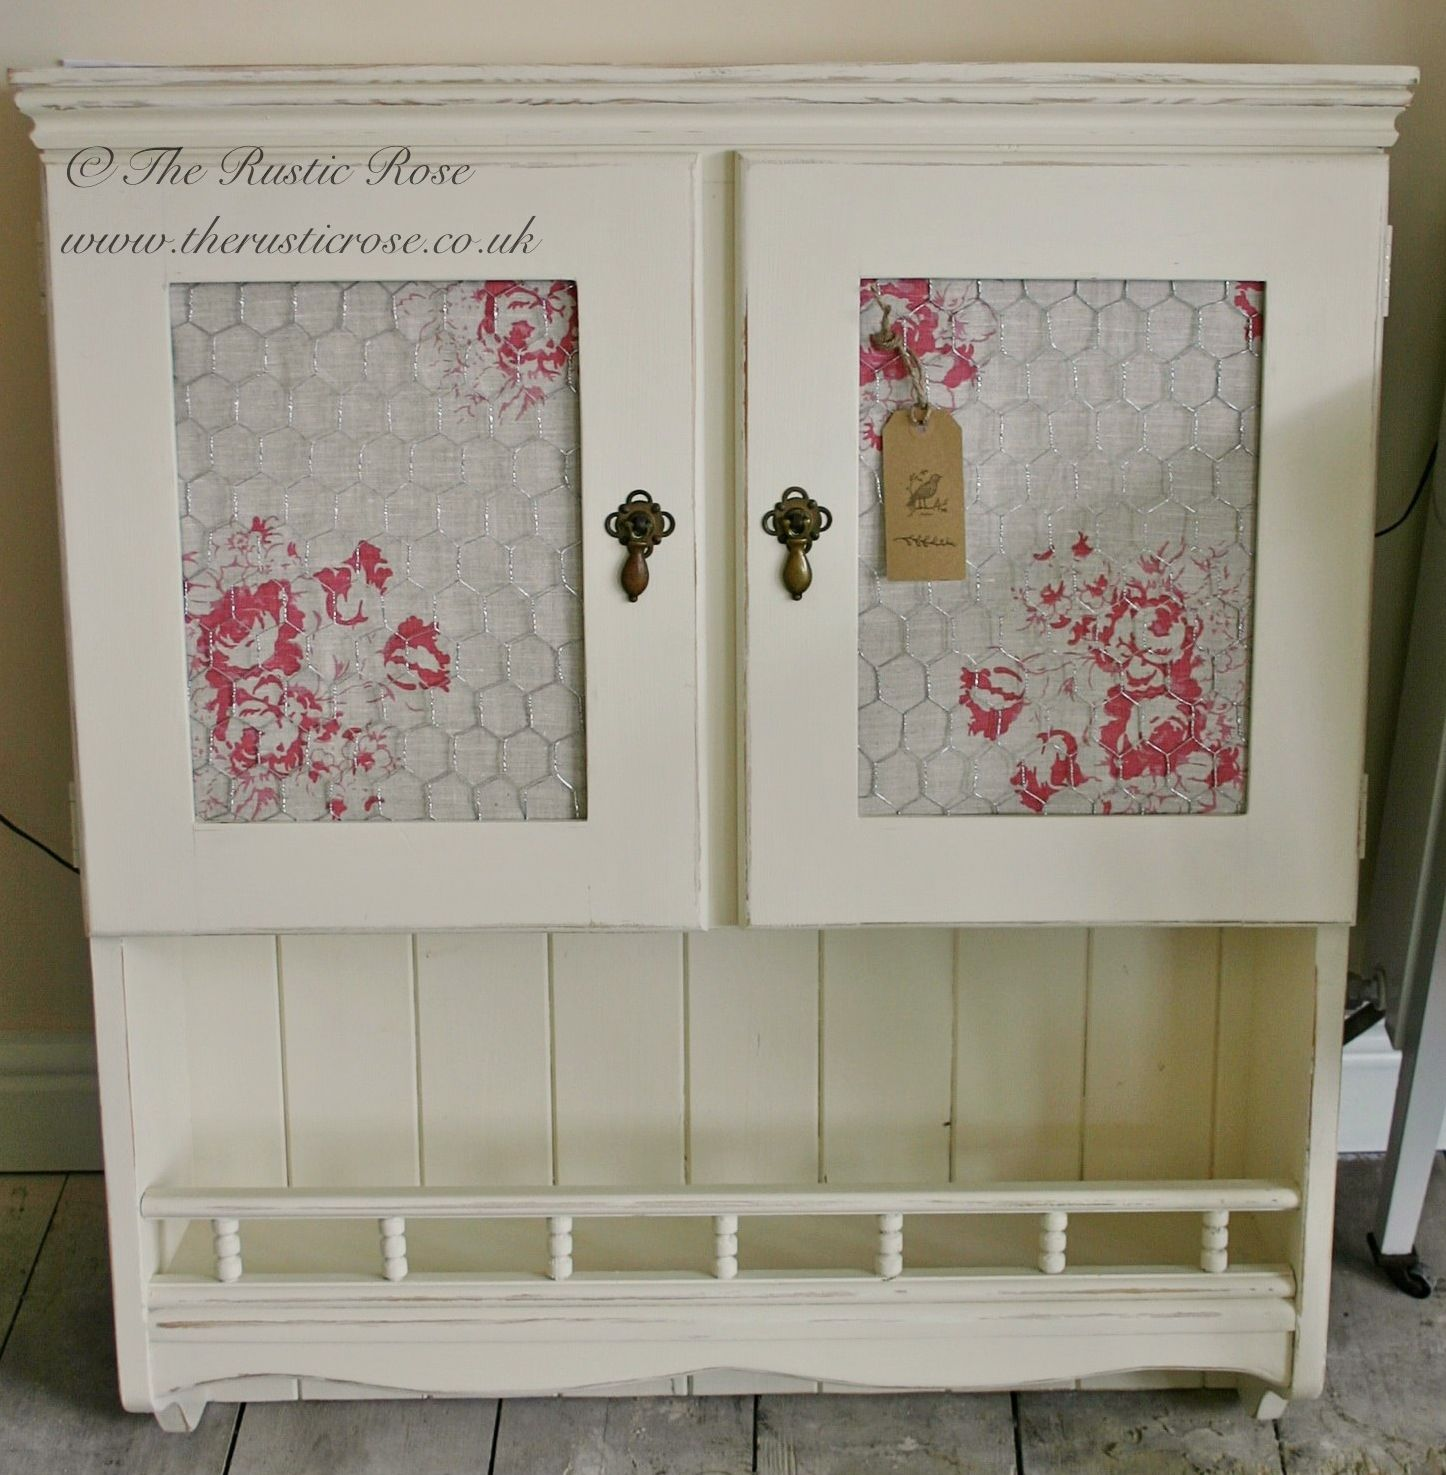 Chicken Wire Kitchen Cabinet Doors: Wall Cabinet With Cabbages And Roses Fabric Behind Chicken